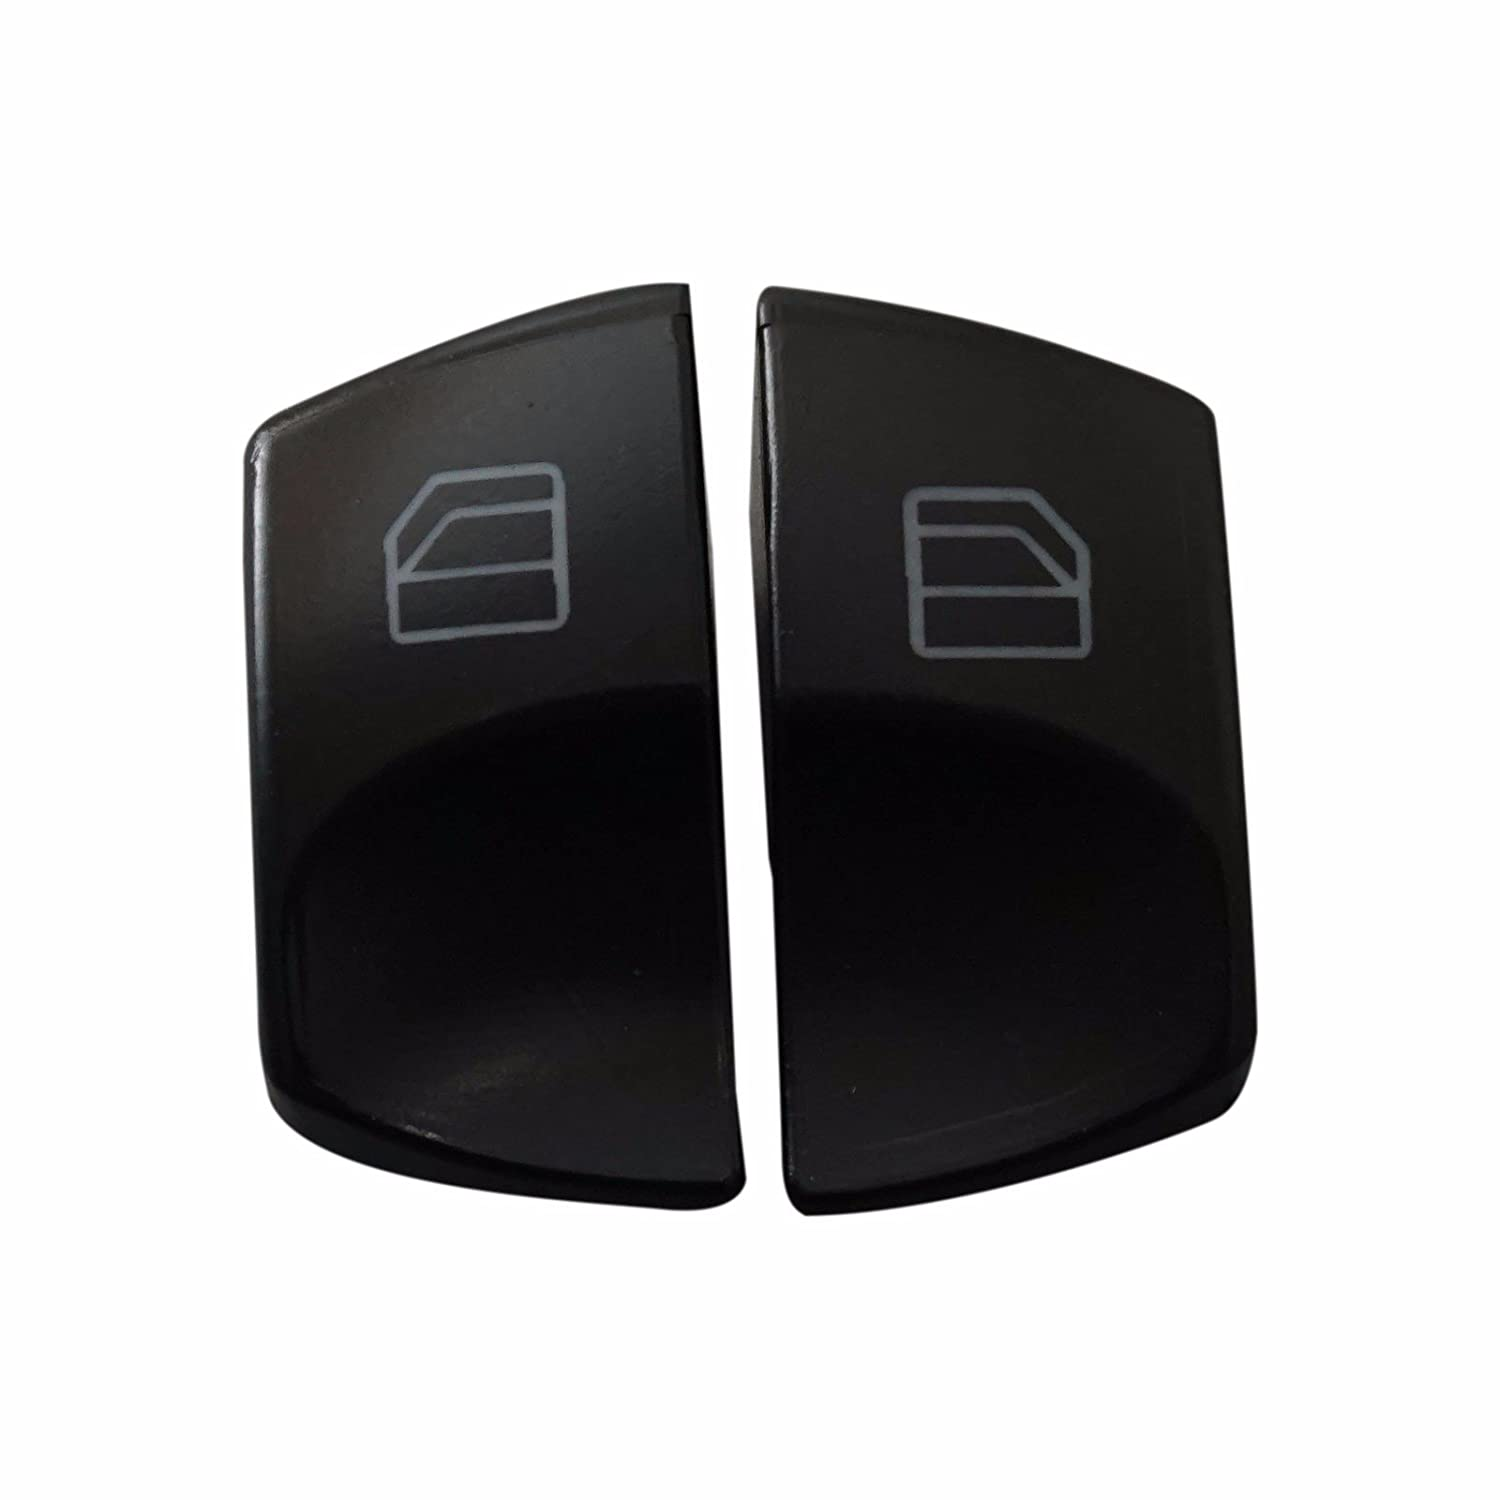 ESC EDP549FBA 2 Pieces Window Switch A 906 545 1213 Button Cover Front Left Door Driver Side For Mercedes Sprinter W906 Crafter Dodge 2006-On ESC Auto Parts